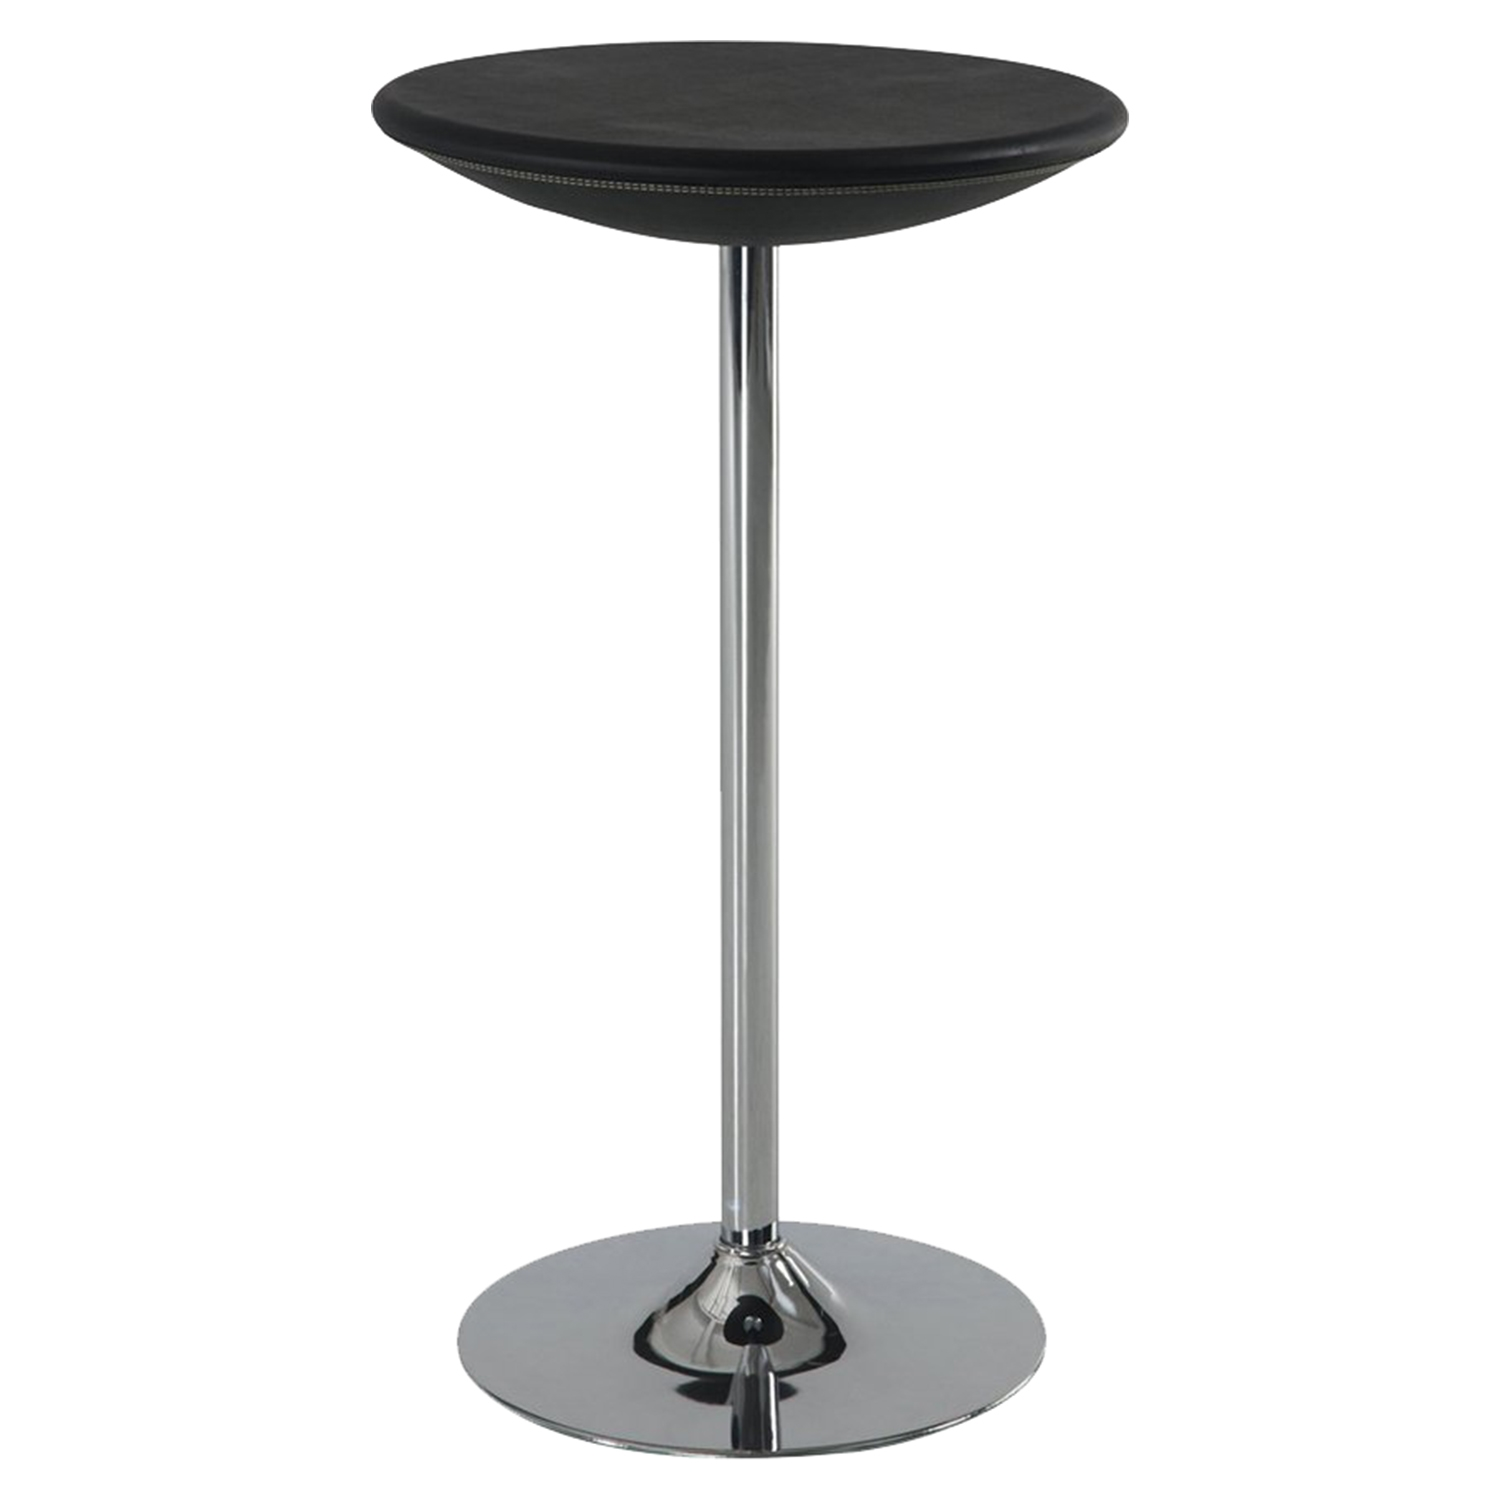 Bar Table in Black, Chrome Base - GLO-M219BT-M